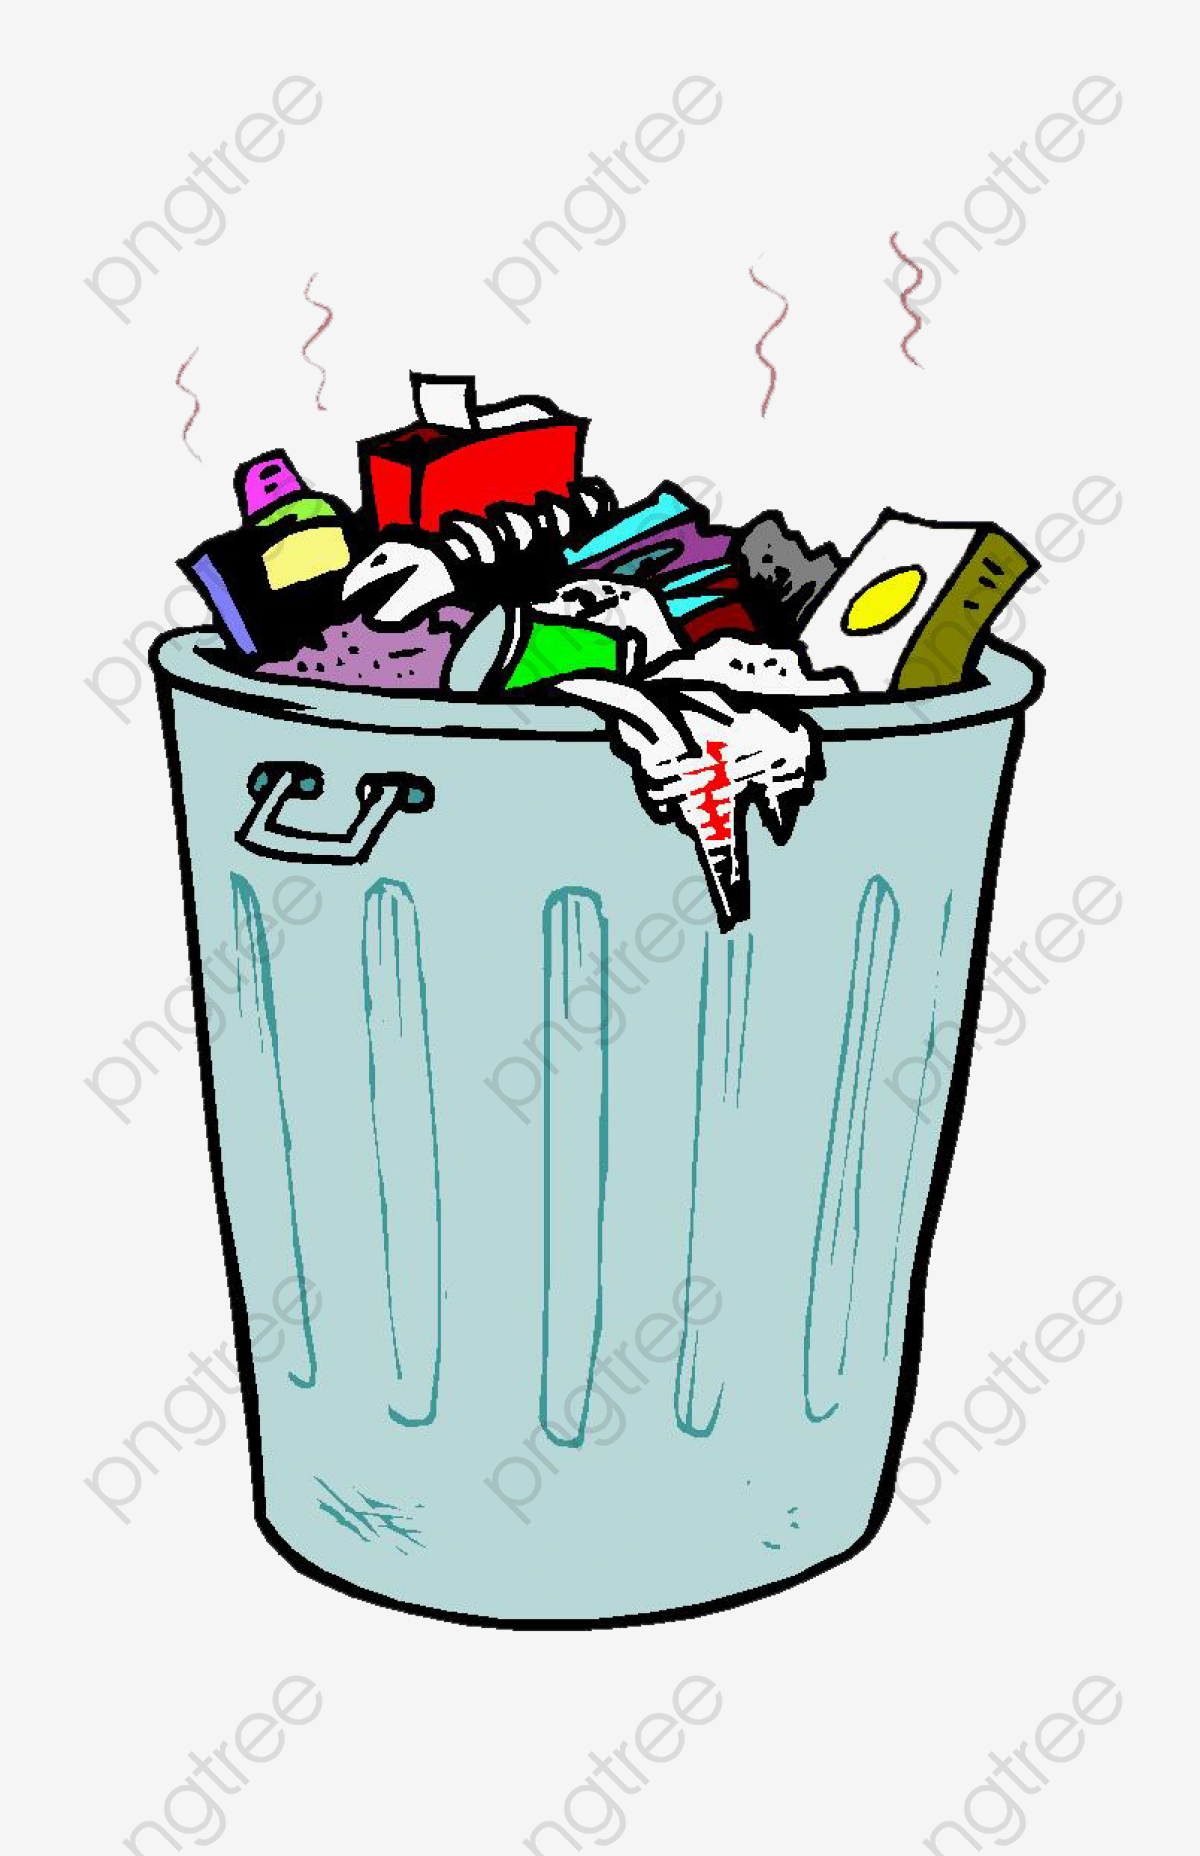 Cartoon Stinking Garbage, Cartoon Clipart, Garbage Heap, Trash Can.